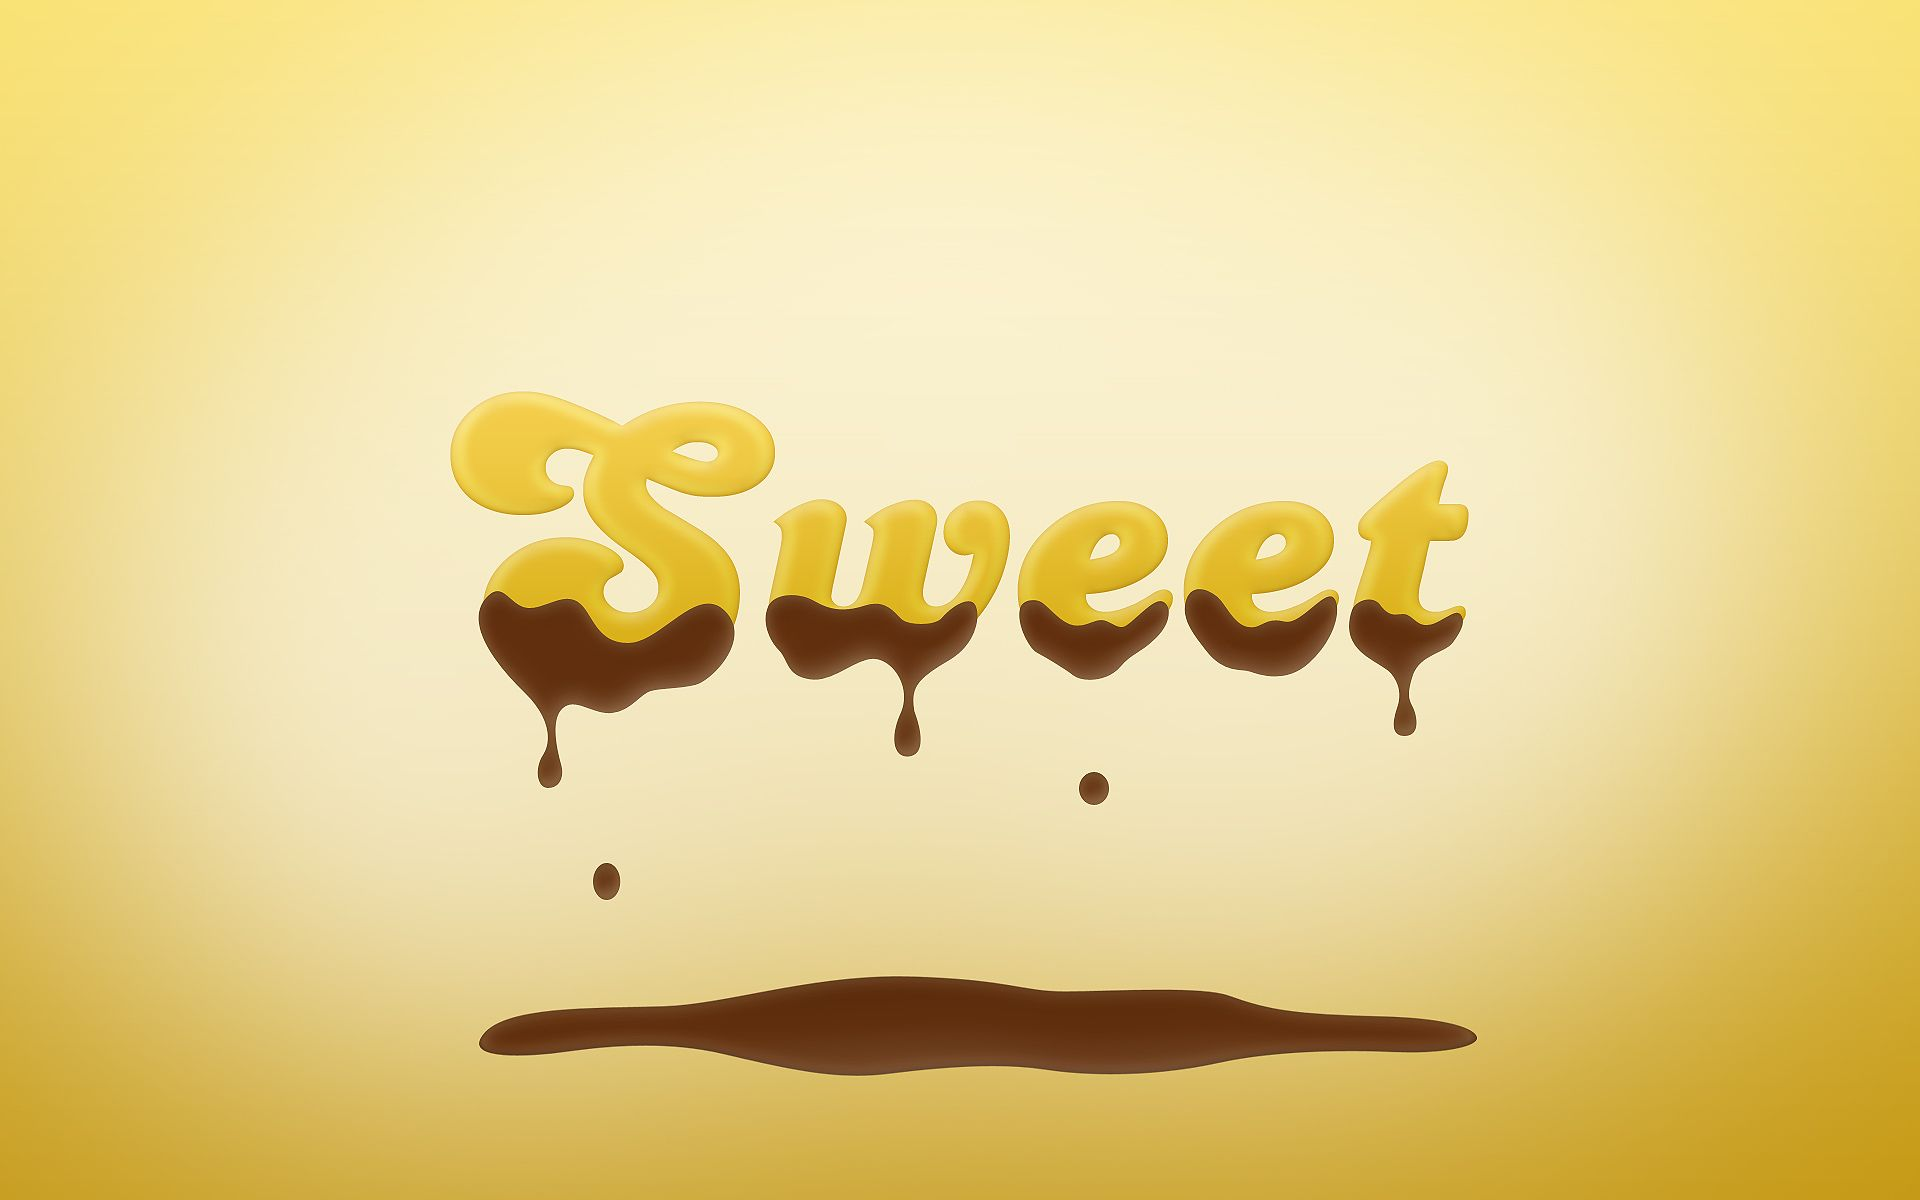 Sweet chocolate coated text effect text effect pinterest sweet chocolate coated text effect baditri Gallery